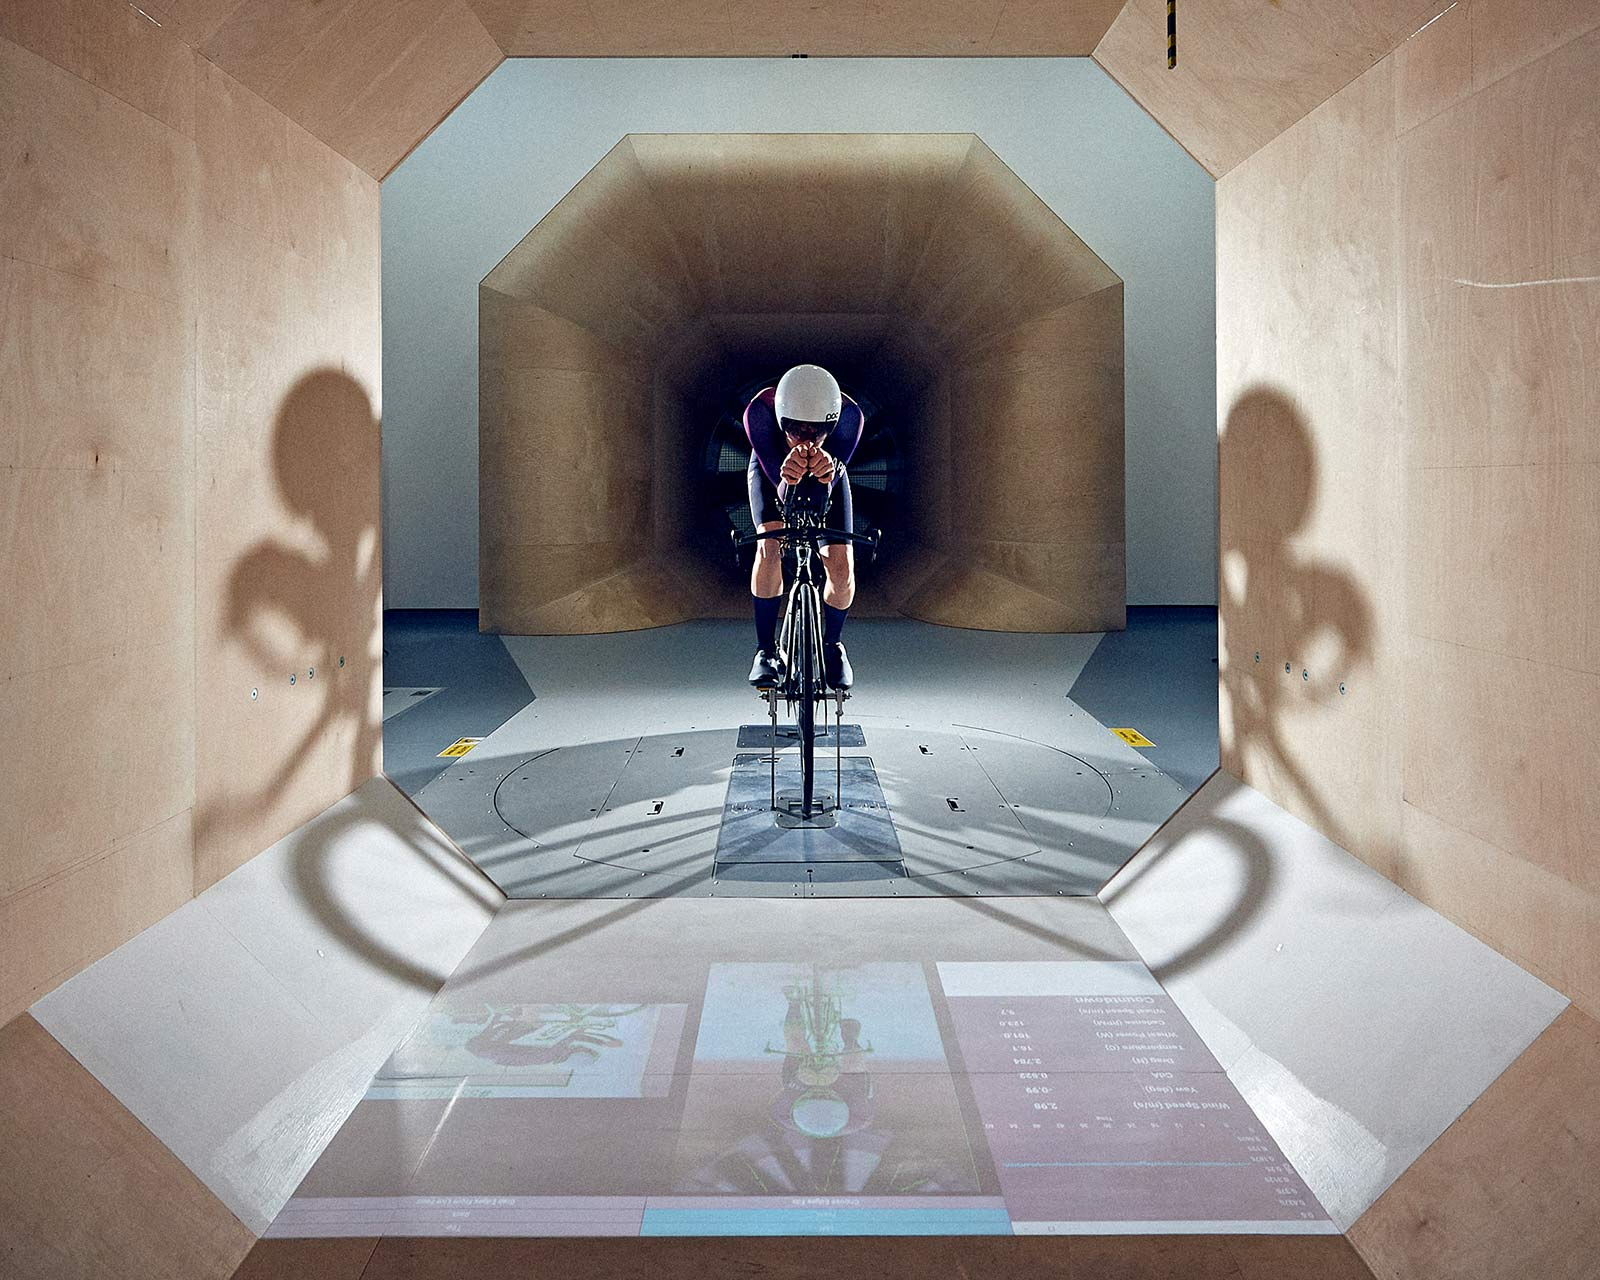 2021 Rapha TT Aerosuit, fastest-ever time trial skinsuit debuts at Giro d Italia, wind tunnel tested